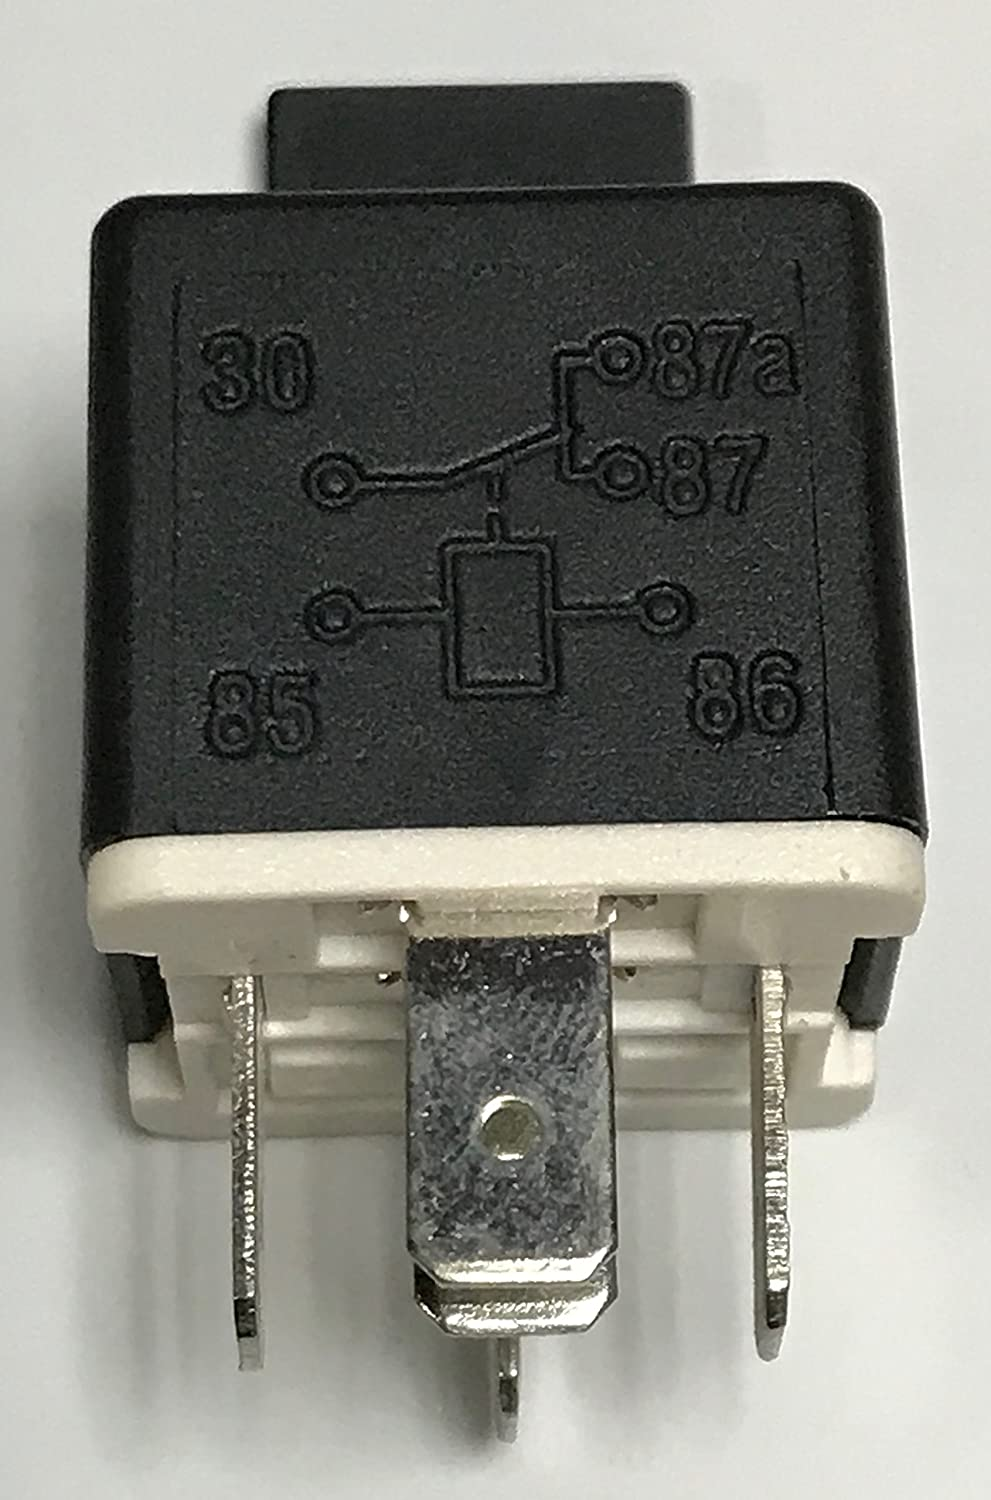 Relay 5 Pin 12V Coil 30/40 amp Spdt 14VDC, Contactor Switch Power, Auto Switches & Starters, 2 Pack